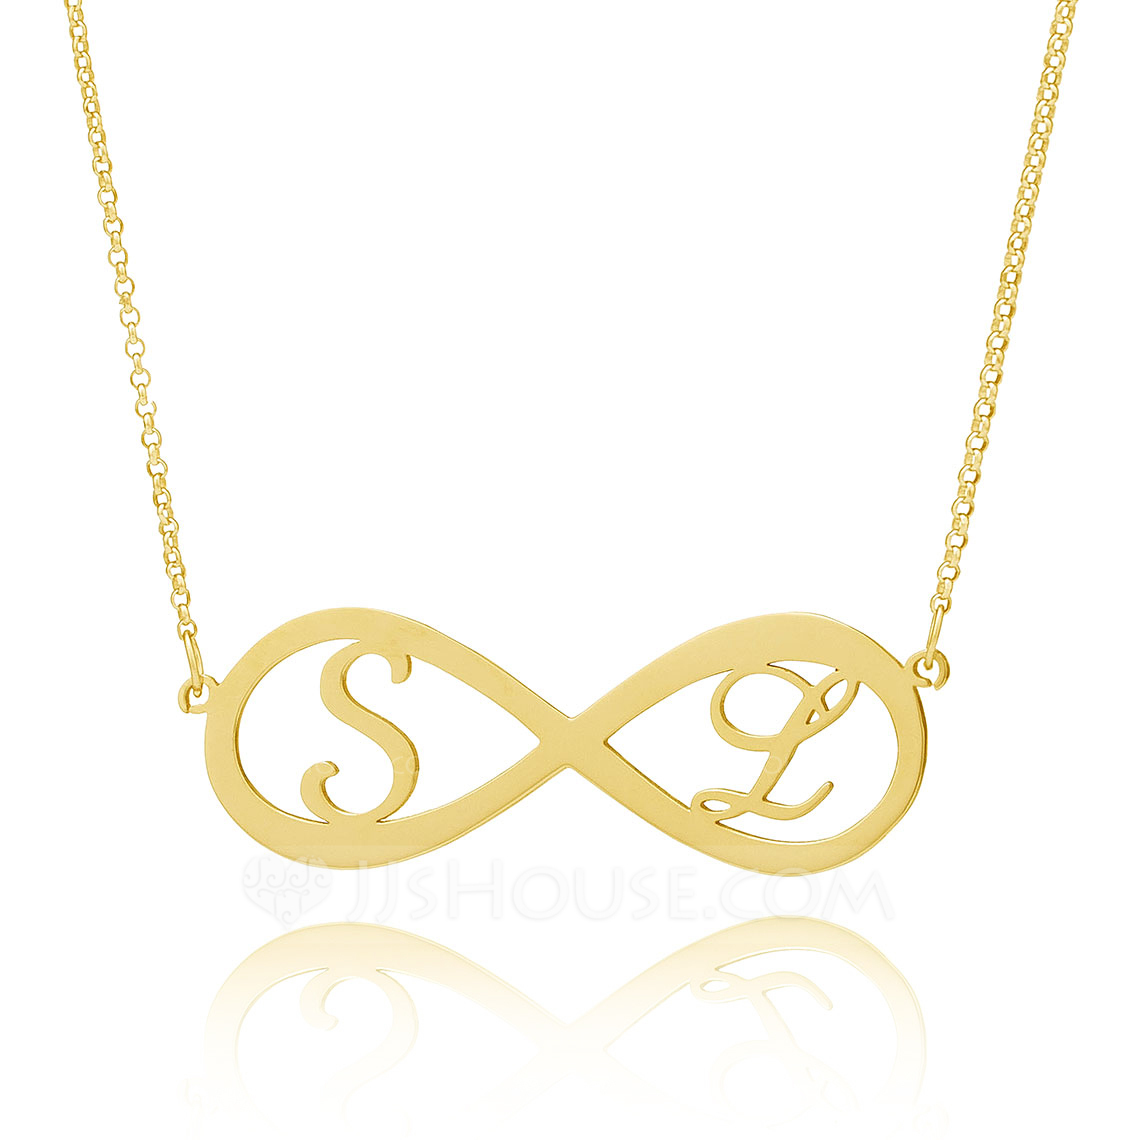 Custom 18k Gold Plated Silver Initial Couple Hollow Carved Two Initial Necklace Infinity Name Necklace - Birthday Gifts Mother's Day Gifts